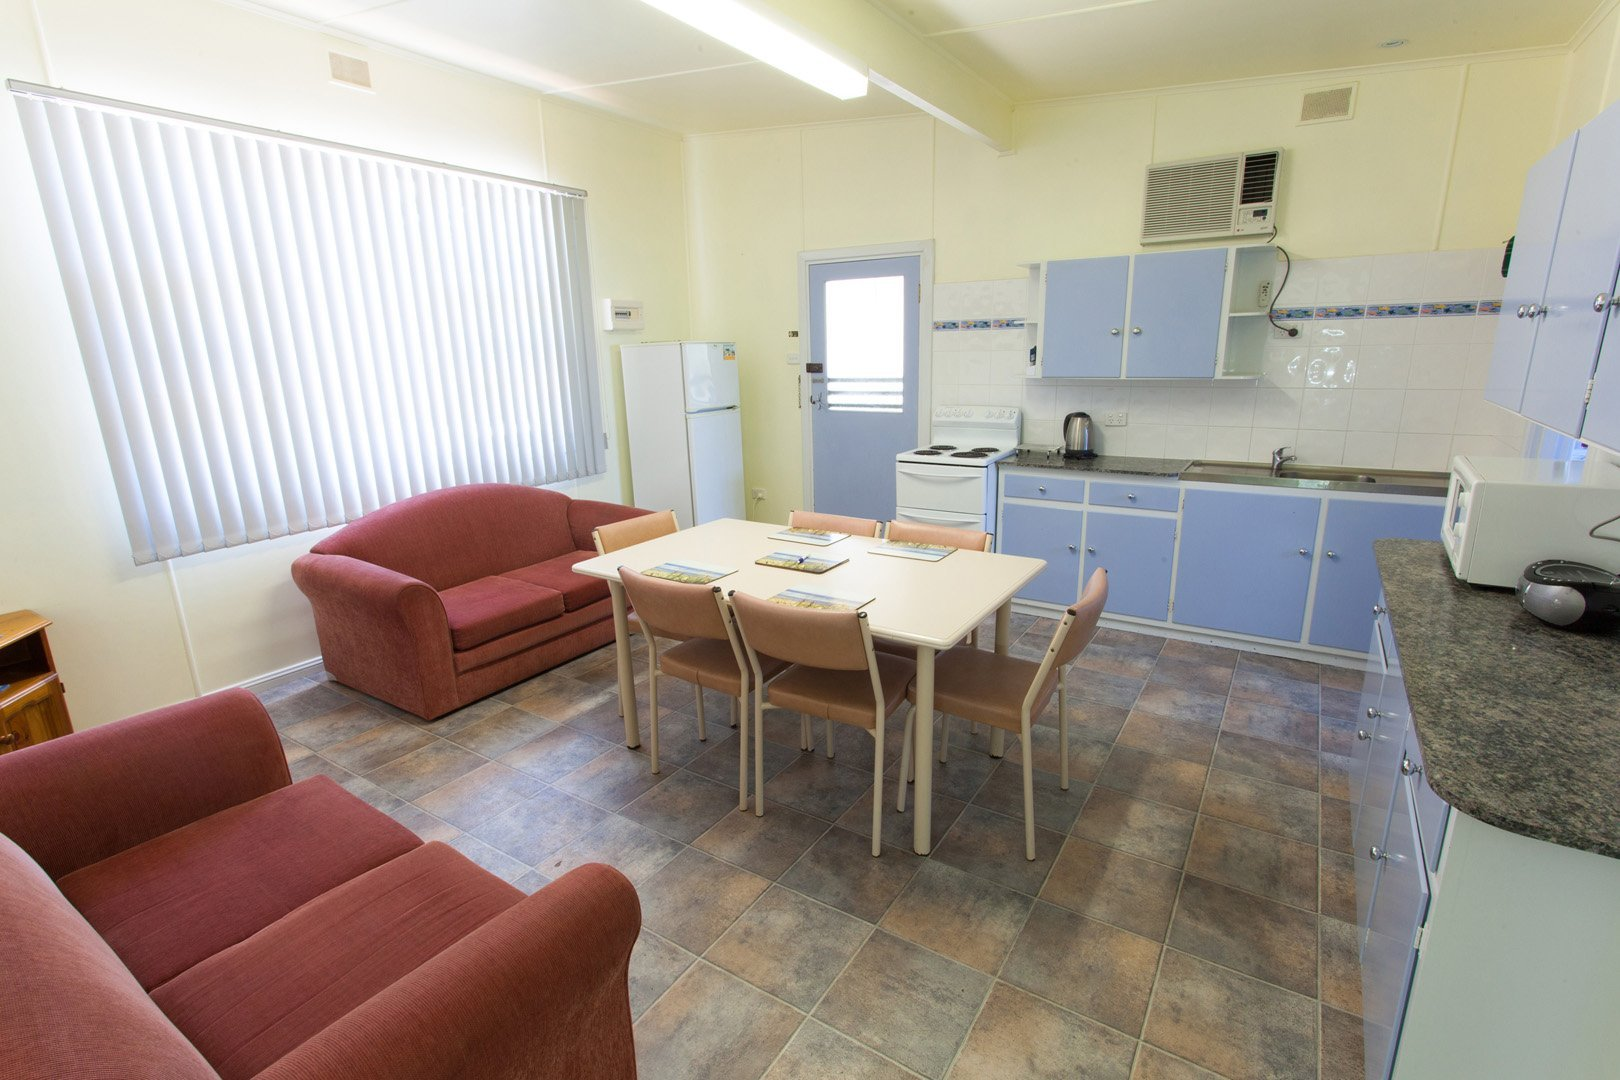 Accommodation Tumby Bay